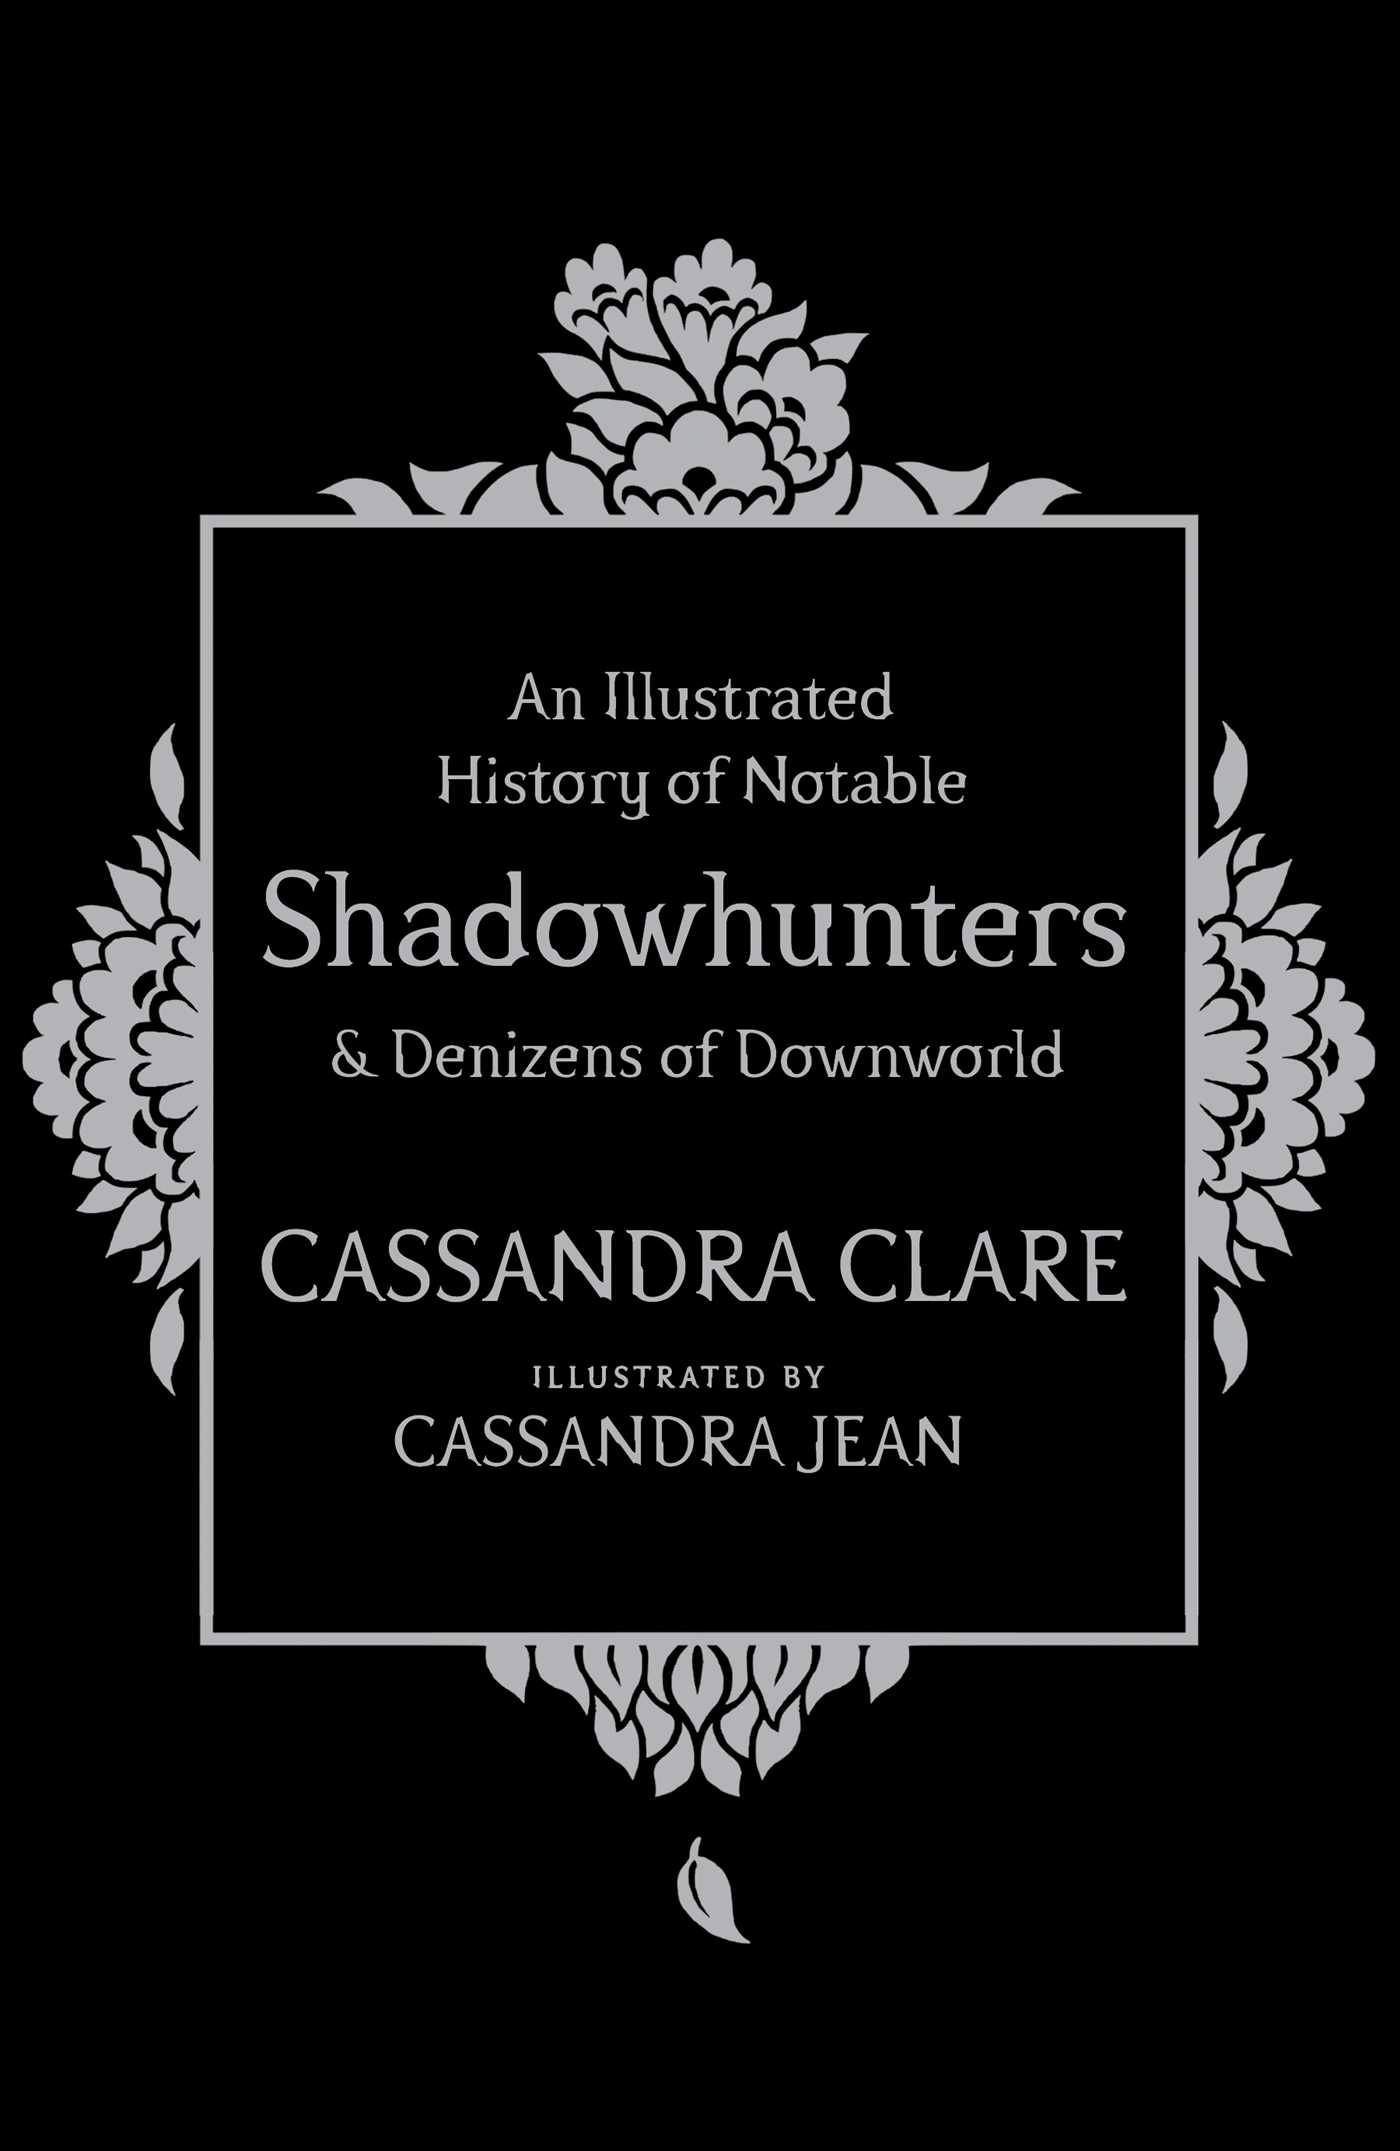 Resultado de imagen de an illustrated history of notable shadowhunters